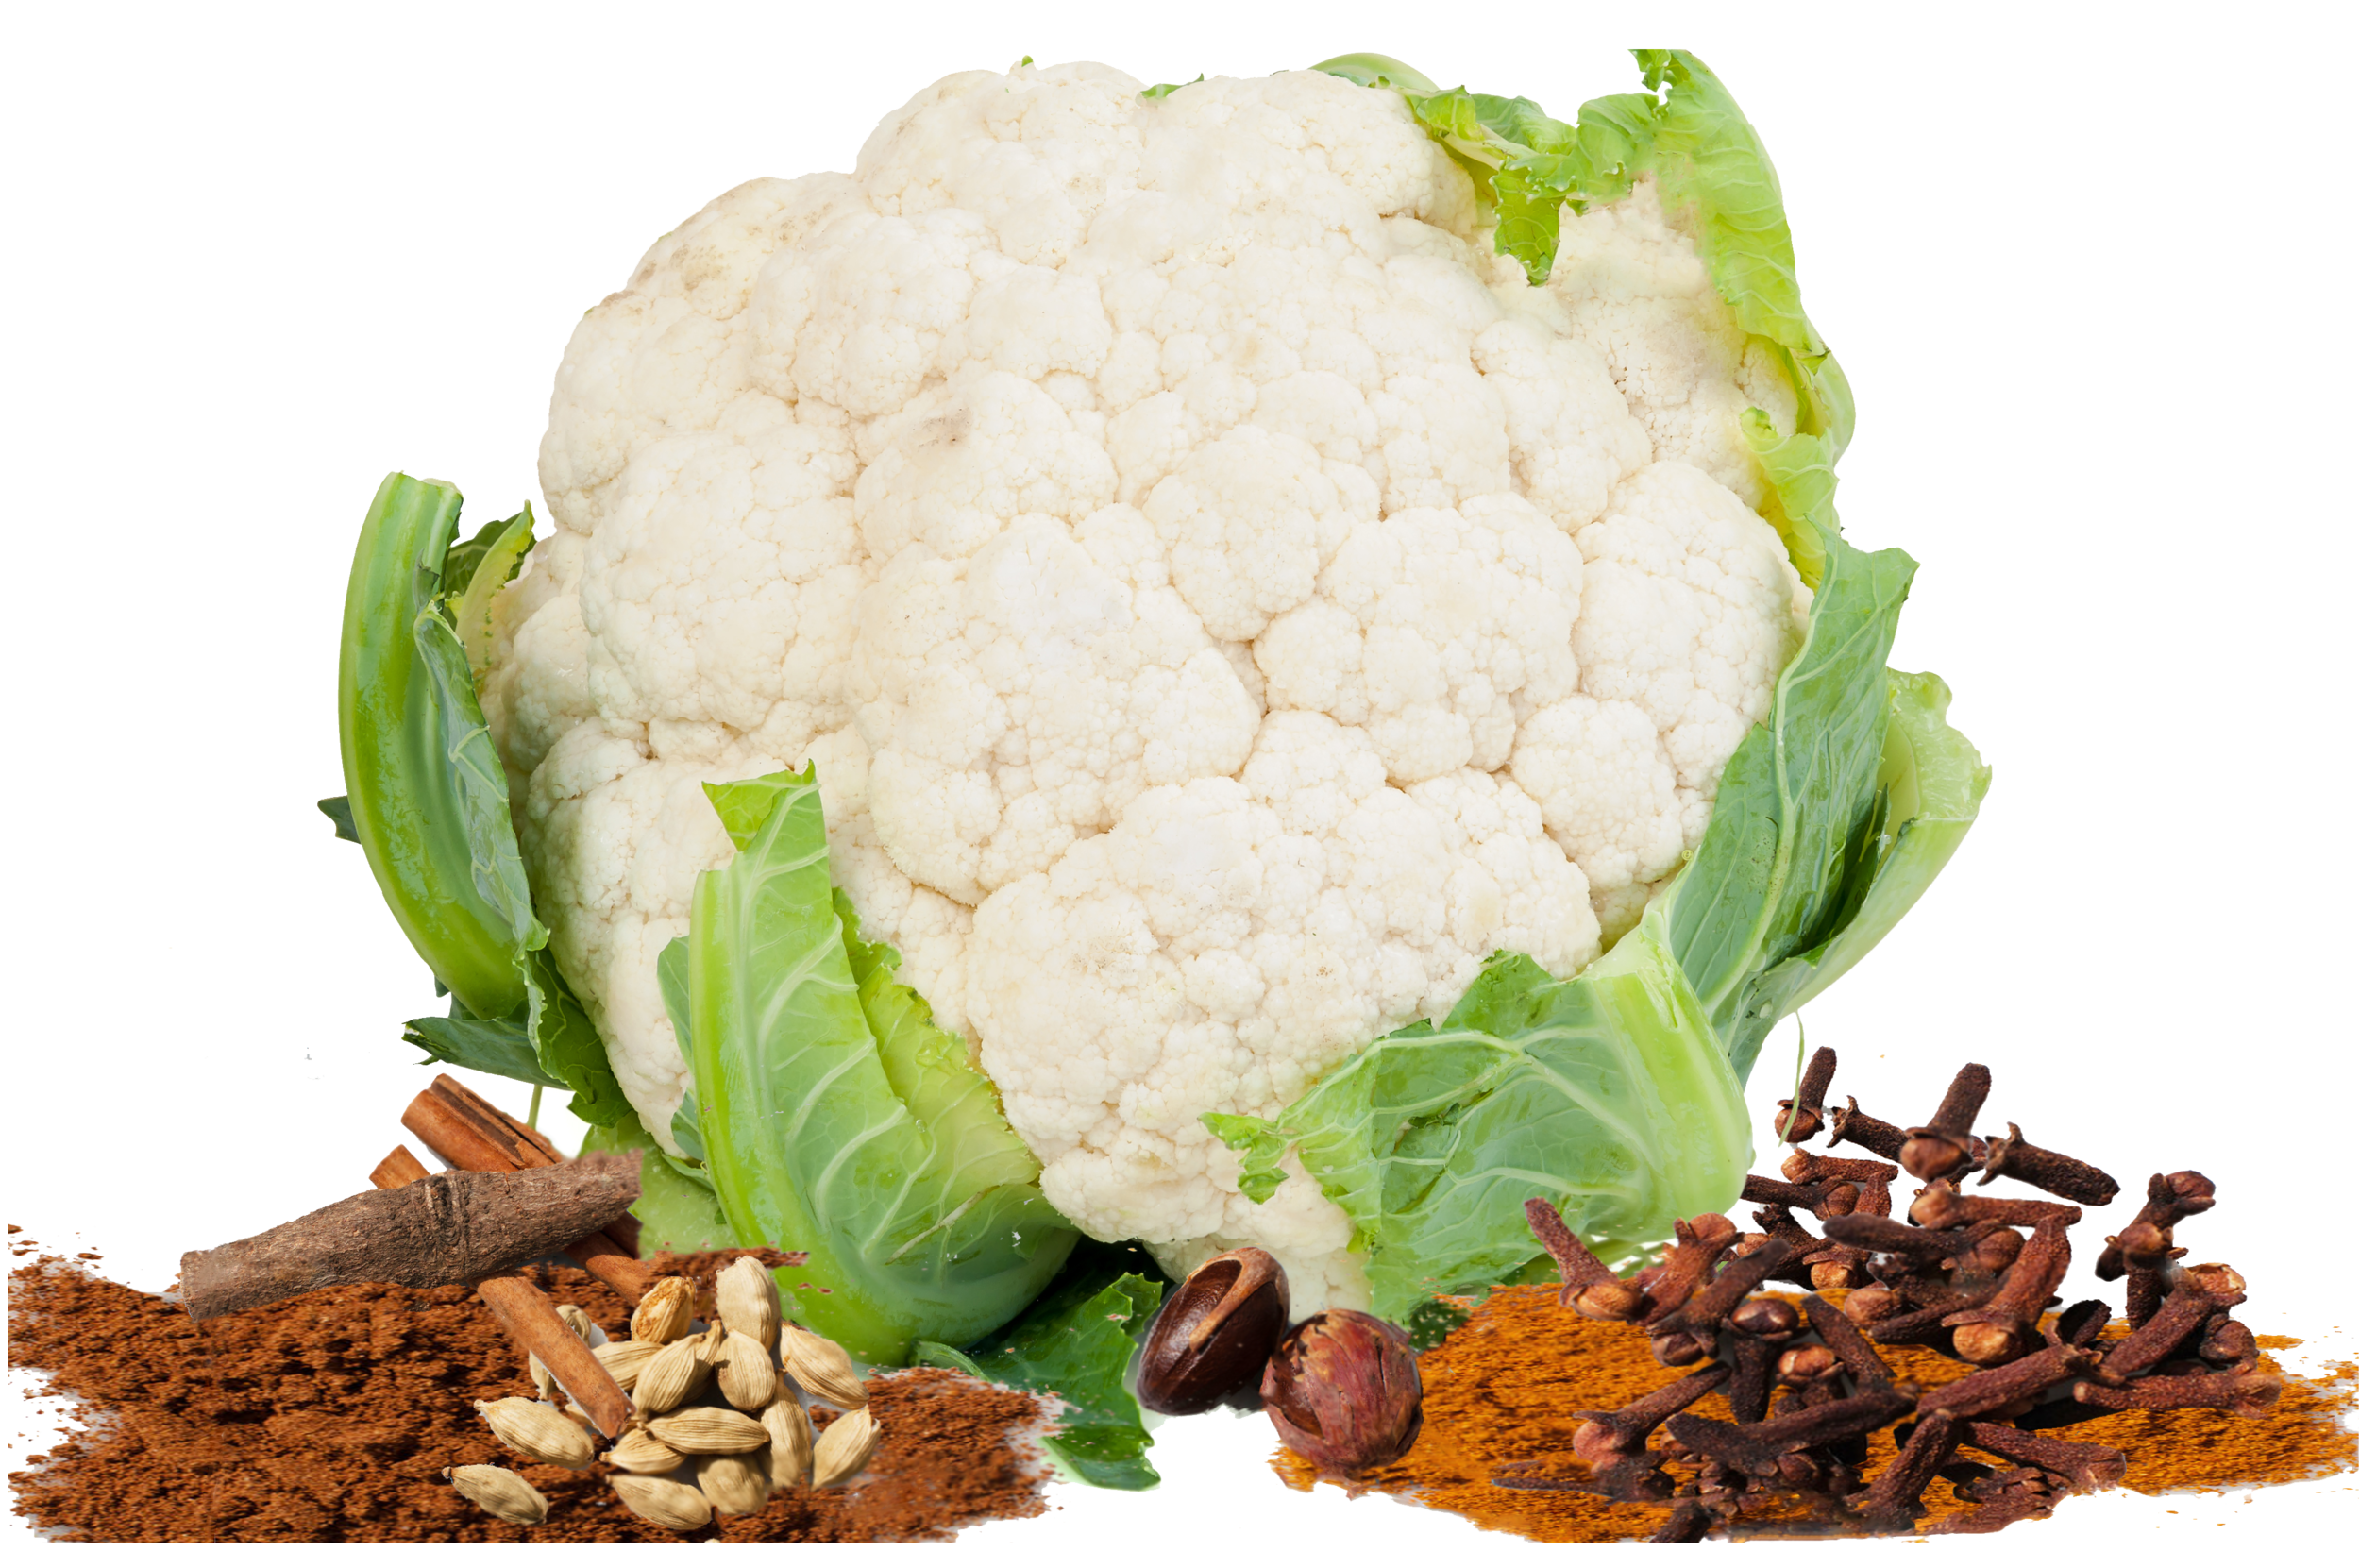 cauliflower-with-leaves-on-white-background-PRDHZJ6.png